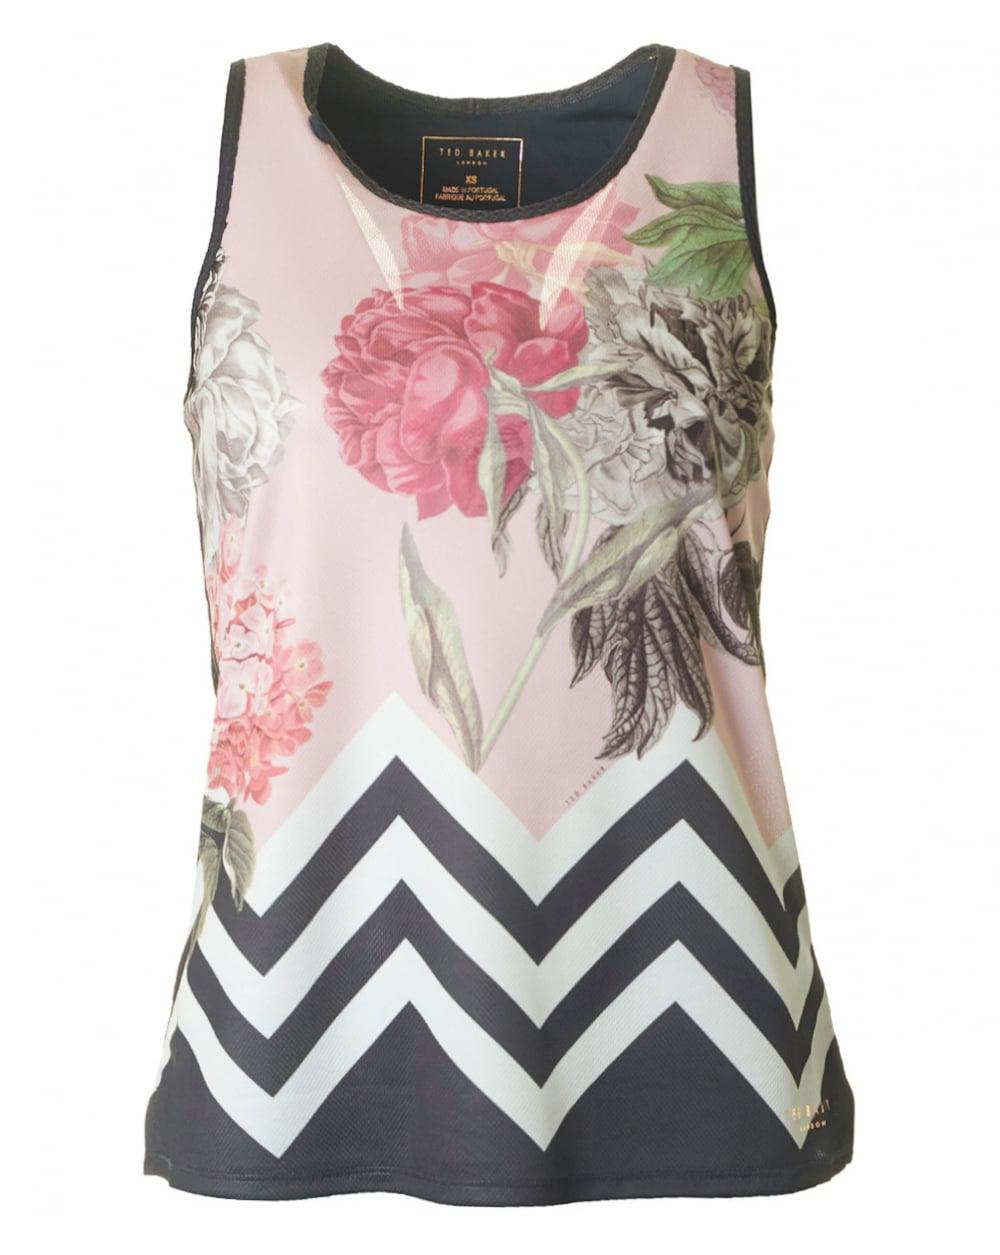 a6607feff0ad Ted Baker Palace Gardens Active Racer Back Vest - Lyst